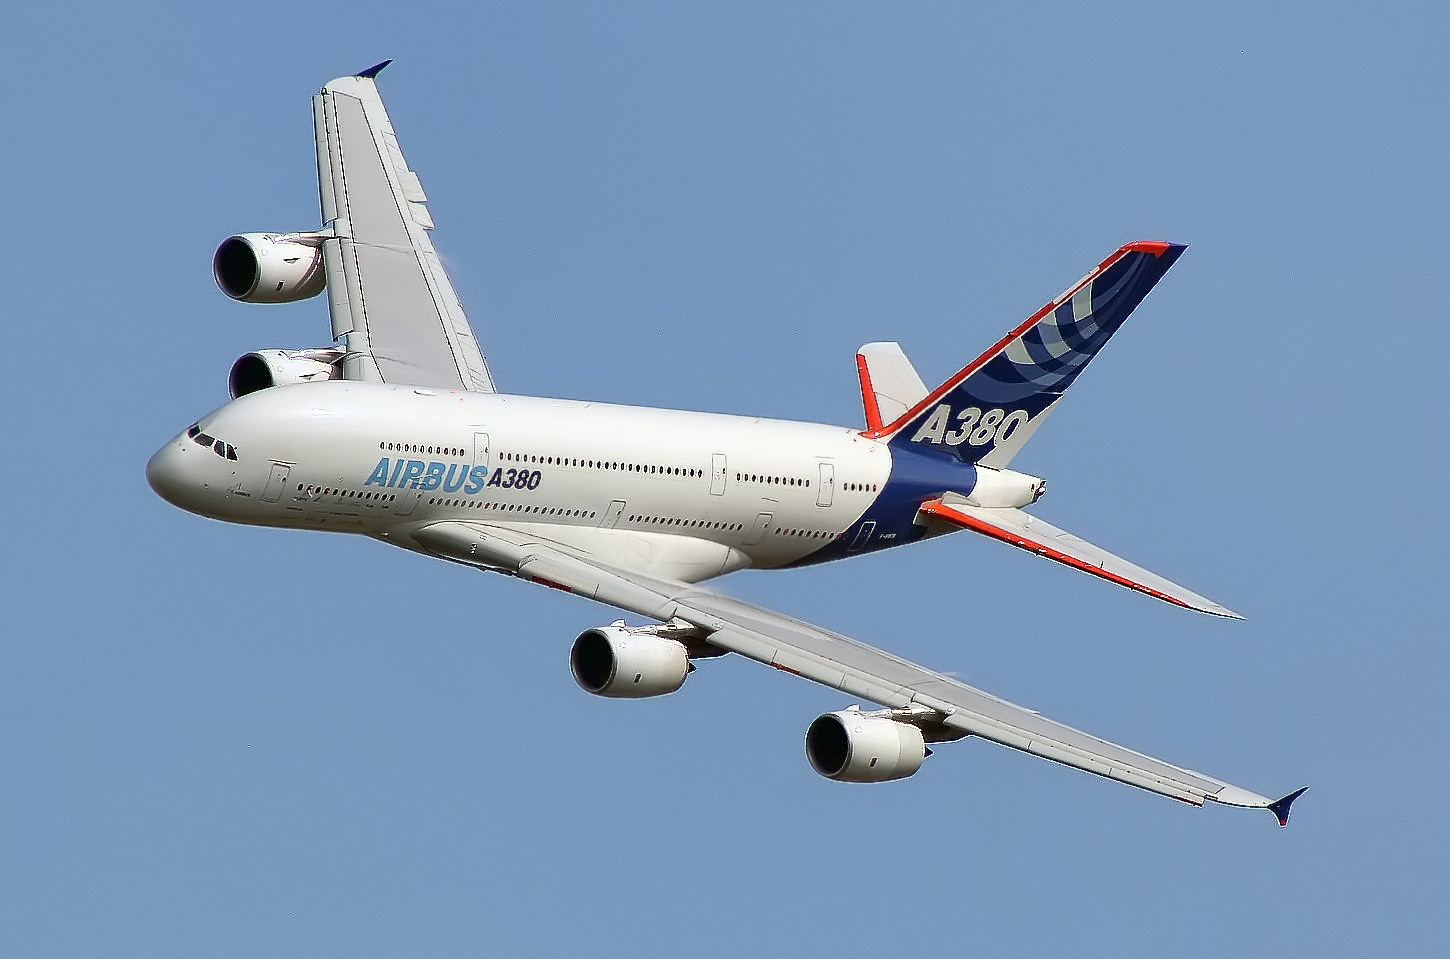 The Airbus A380, the largest airliner